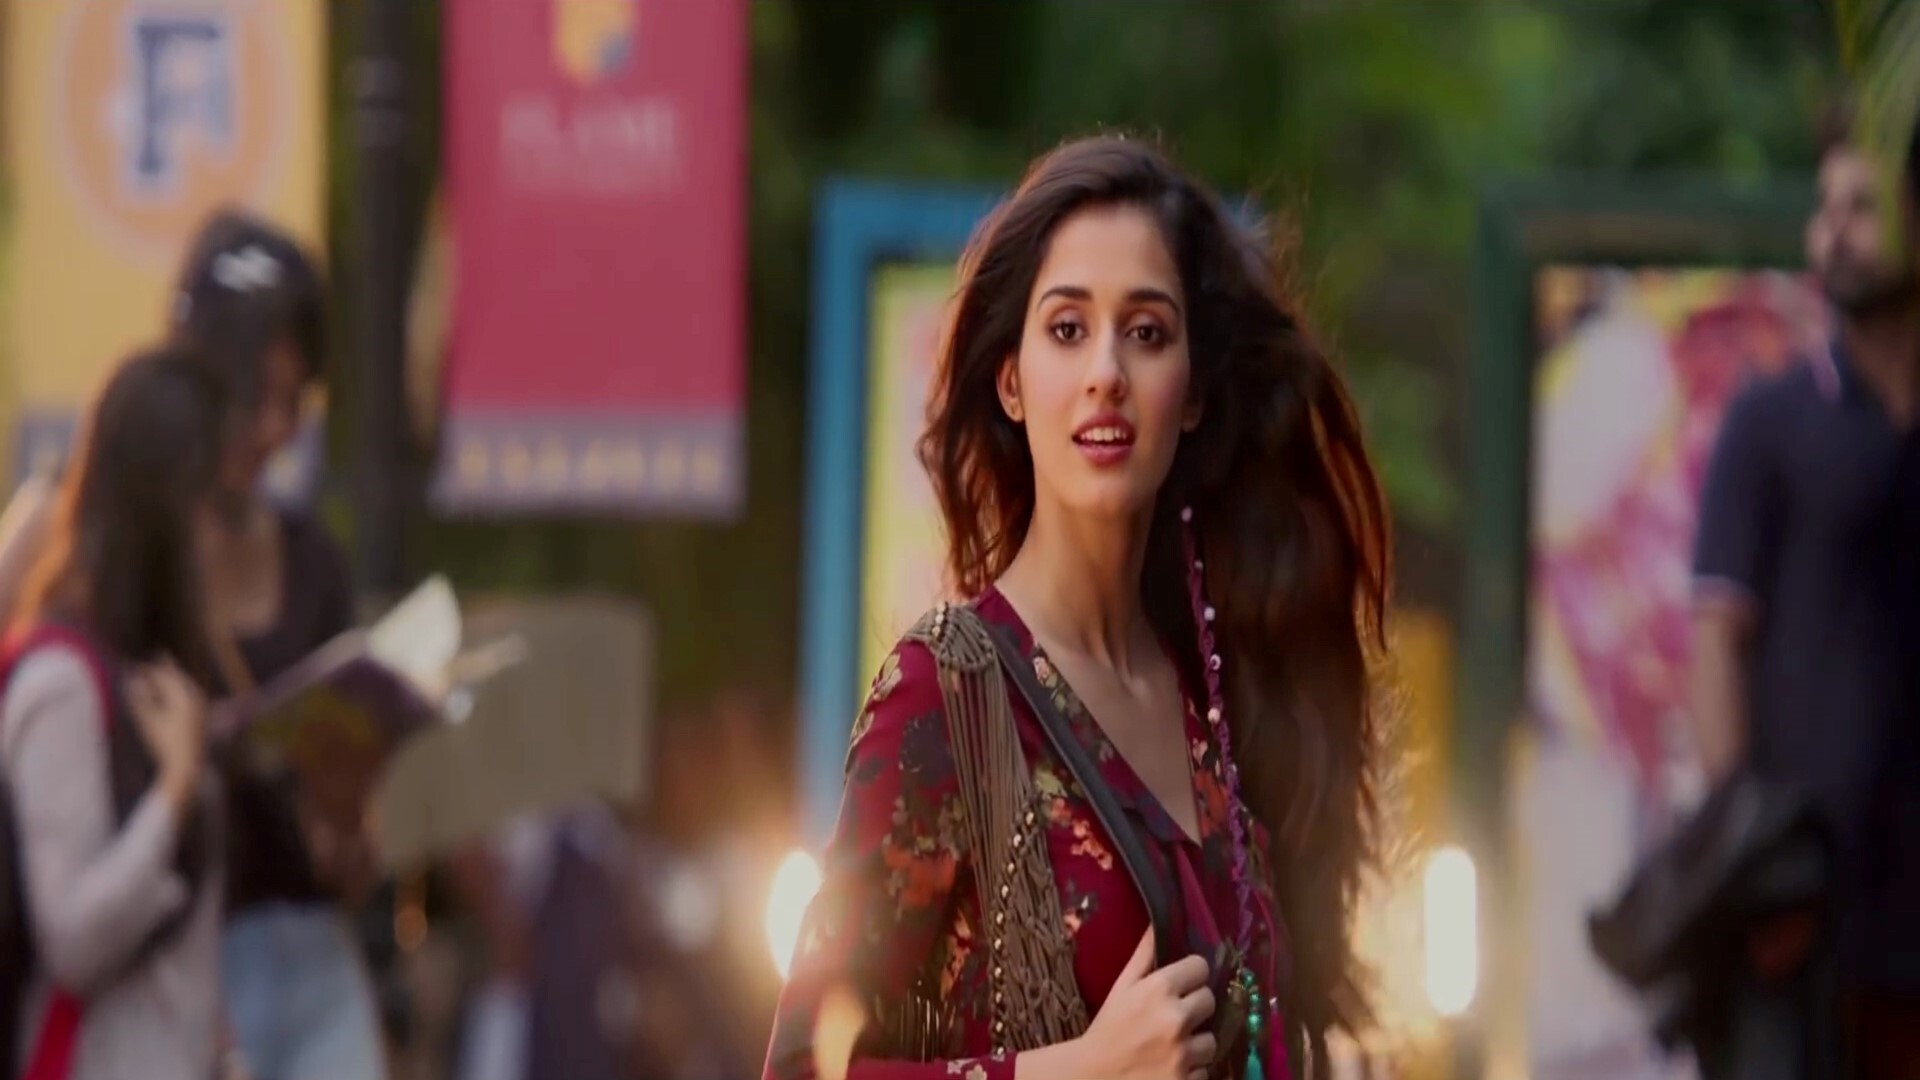 Disha patani in baaghi 2 movie wallpaper hd wallpapers - Baaghi 2 love wallpaper ...